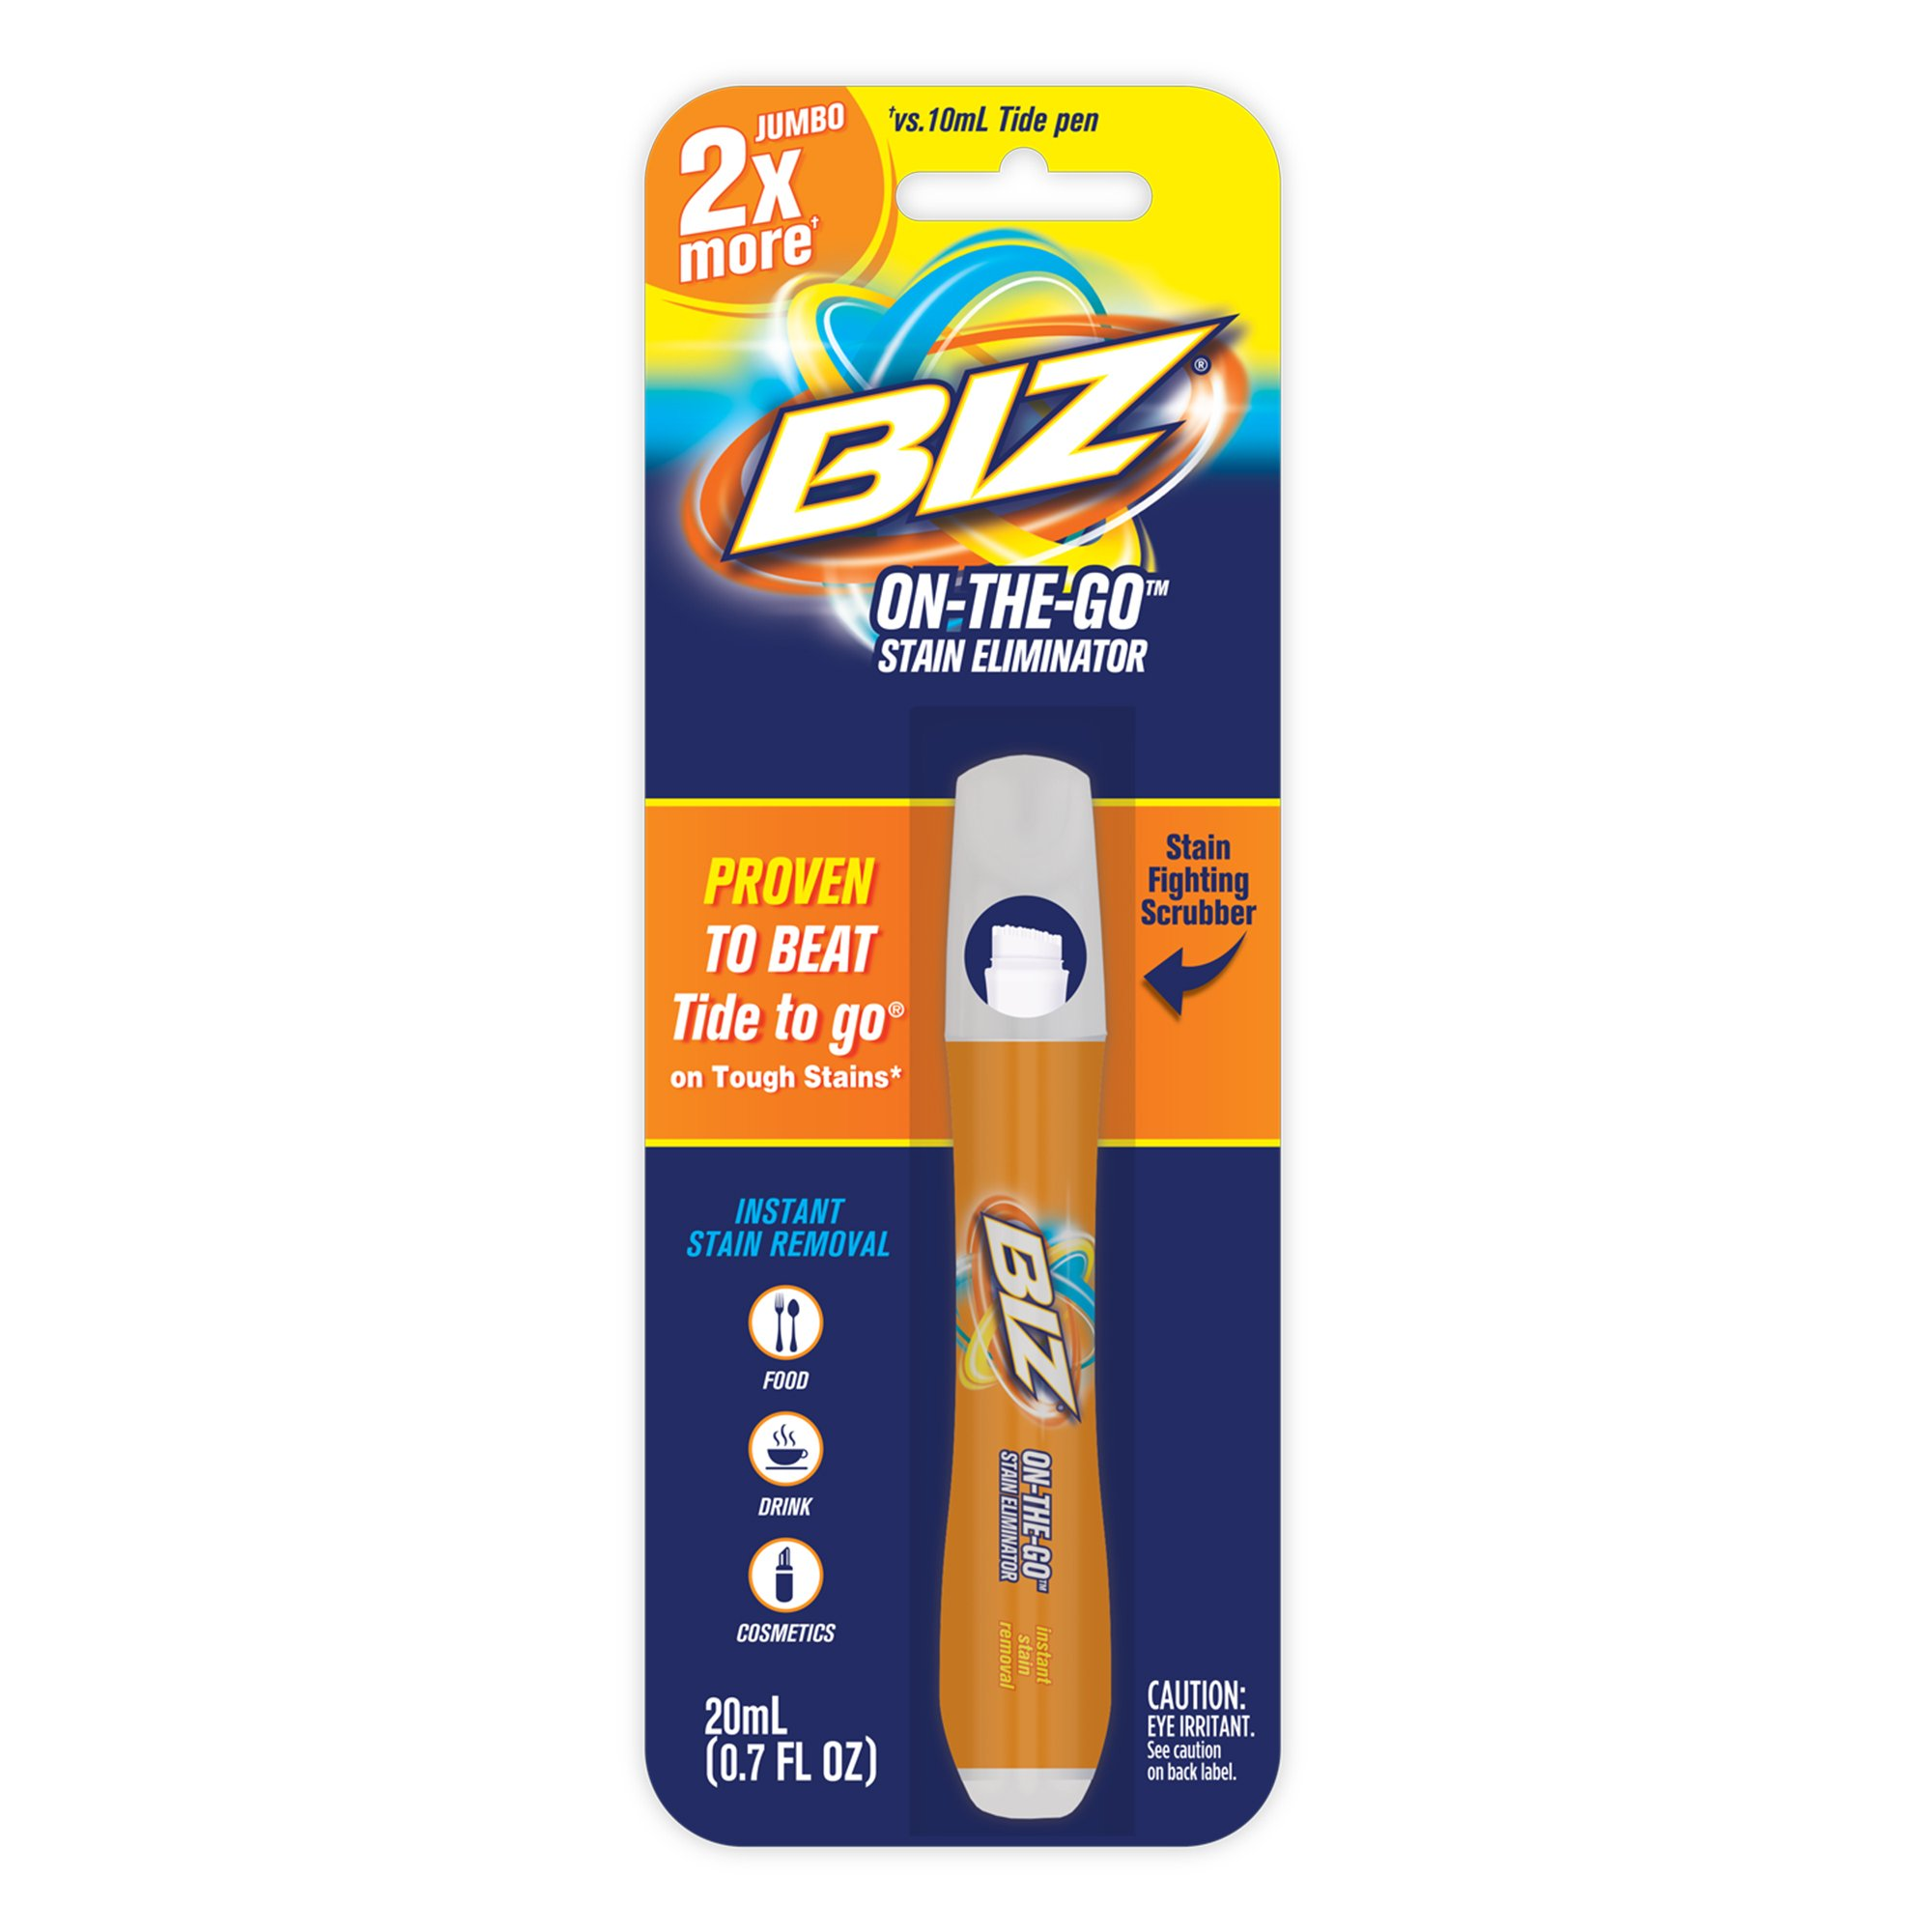 BIZ On-the-Go Stain Eliminator (8-Pack of Stain Remover Pens) by Biz